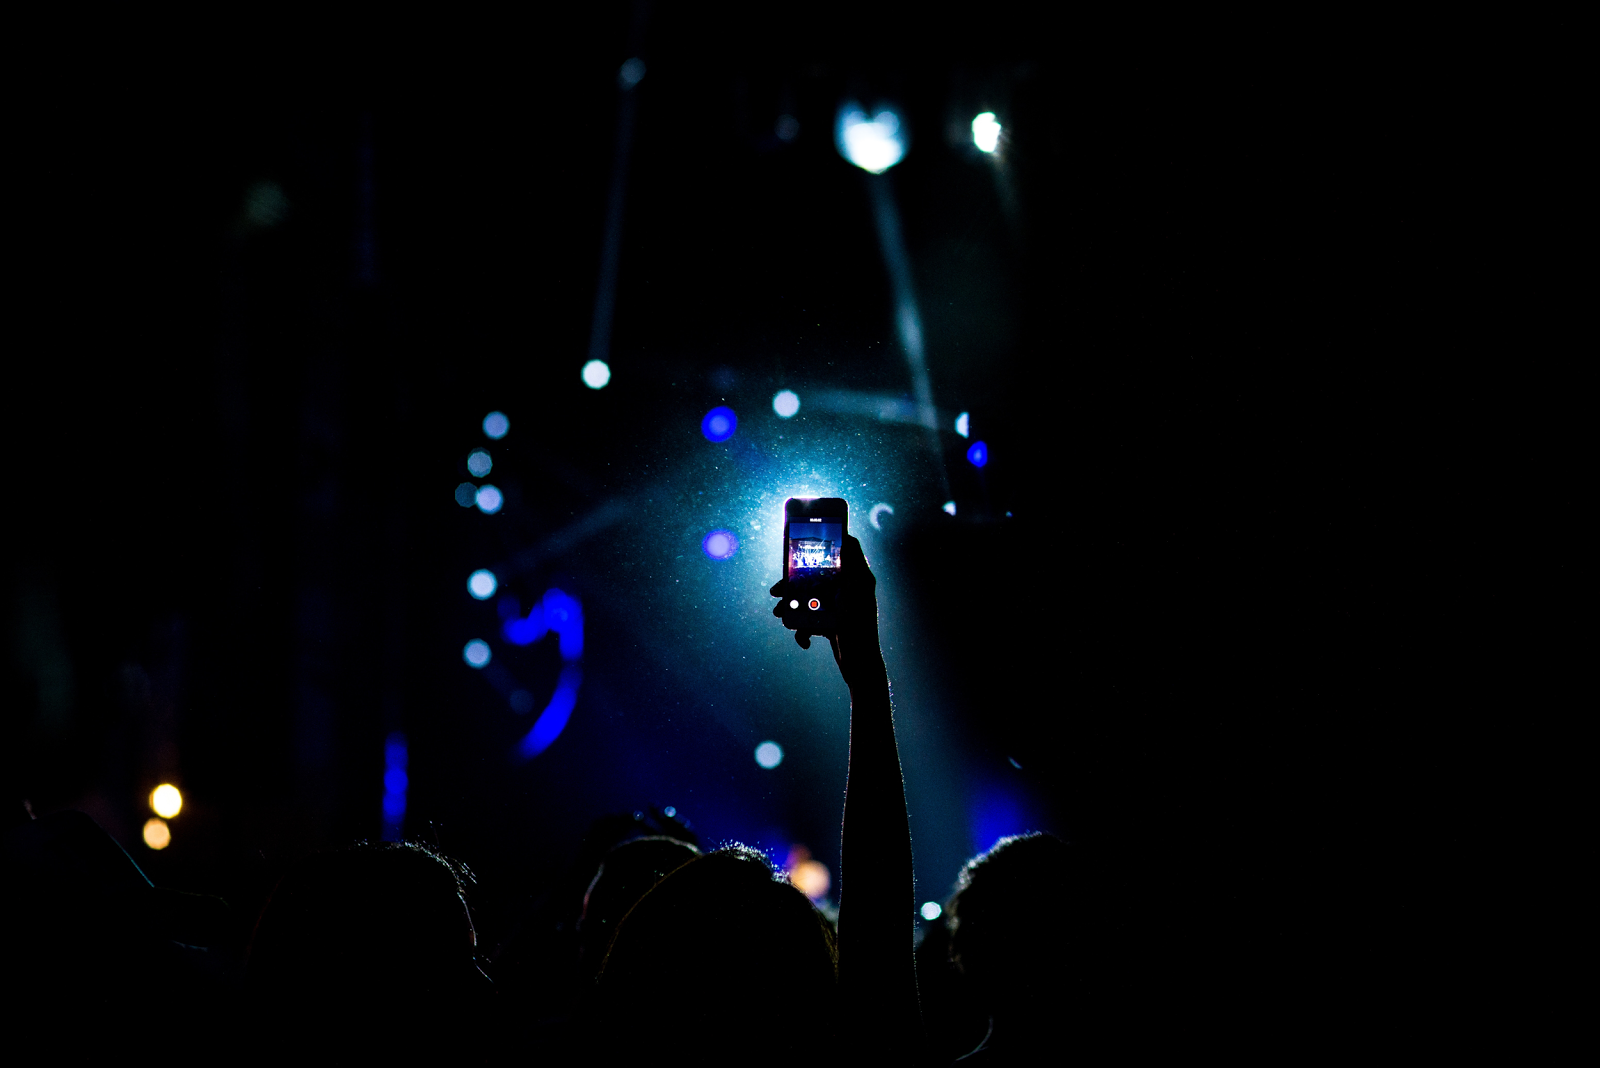 Just don't be like your friend who Snaps the entire concert.